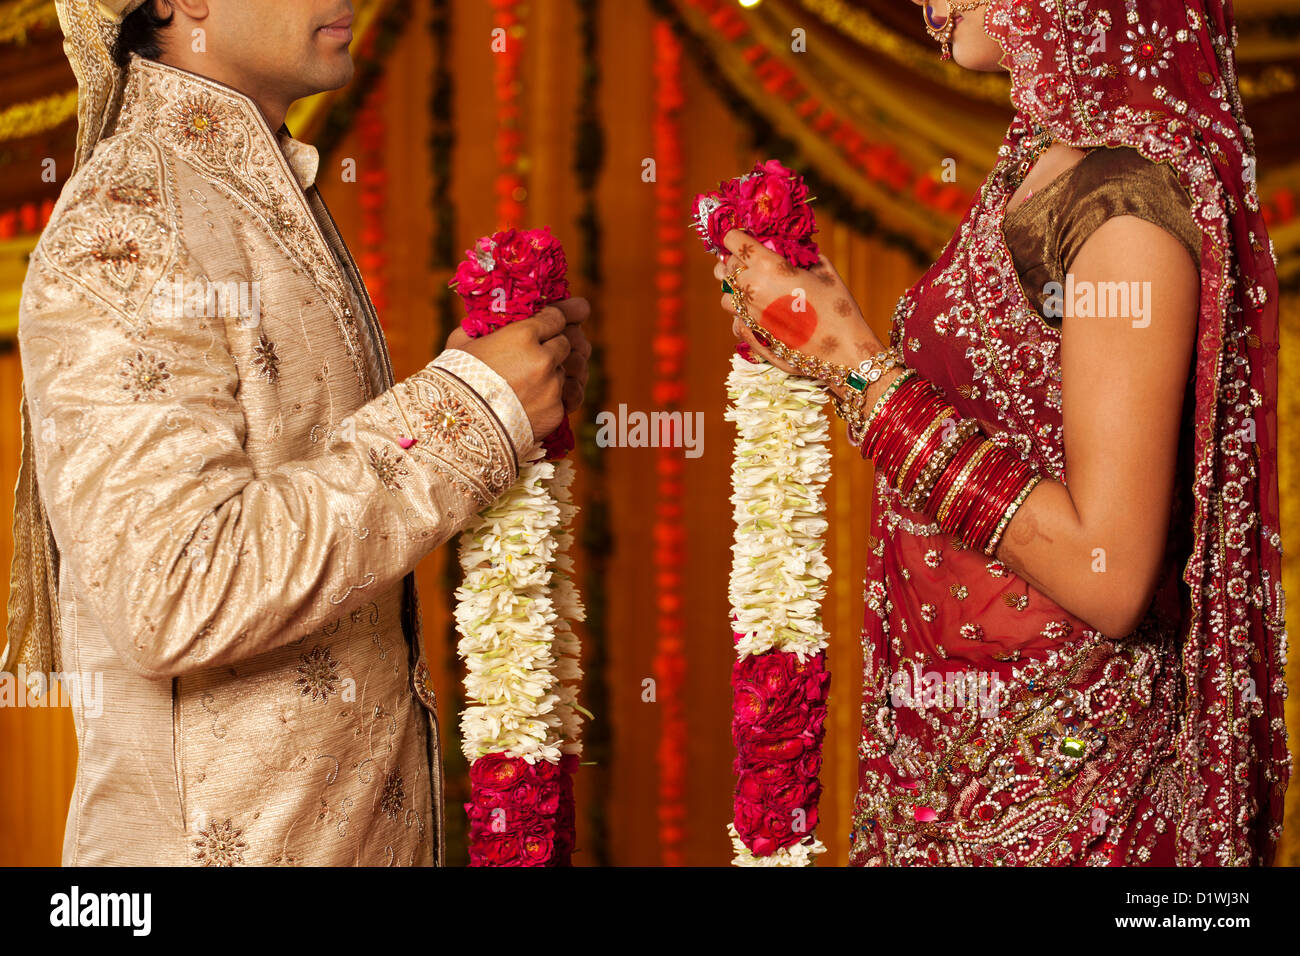 Indian bride and groom holding garlands - Stock Image